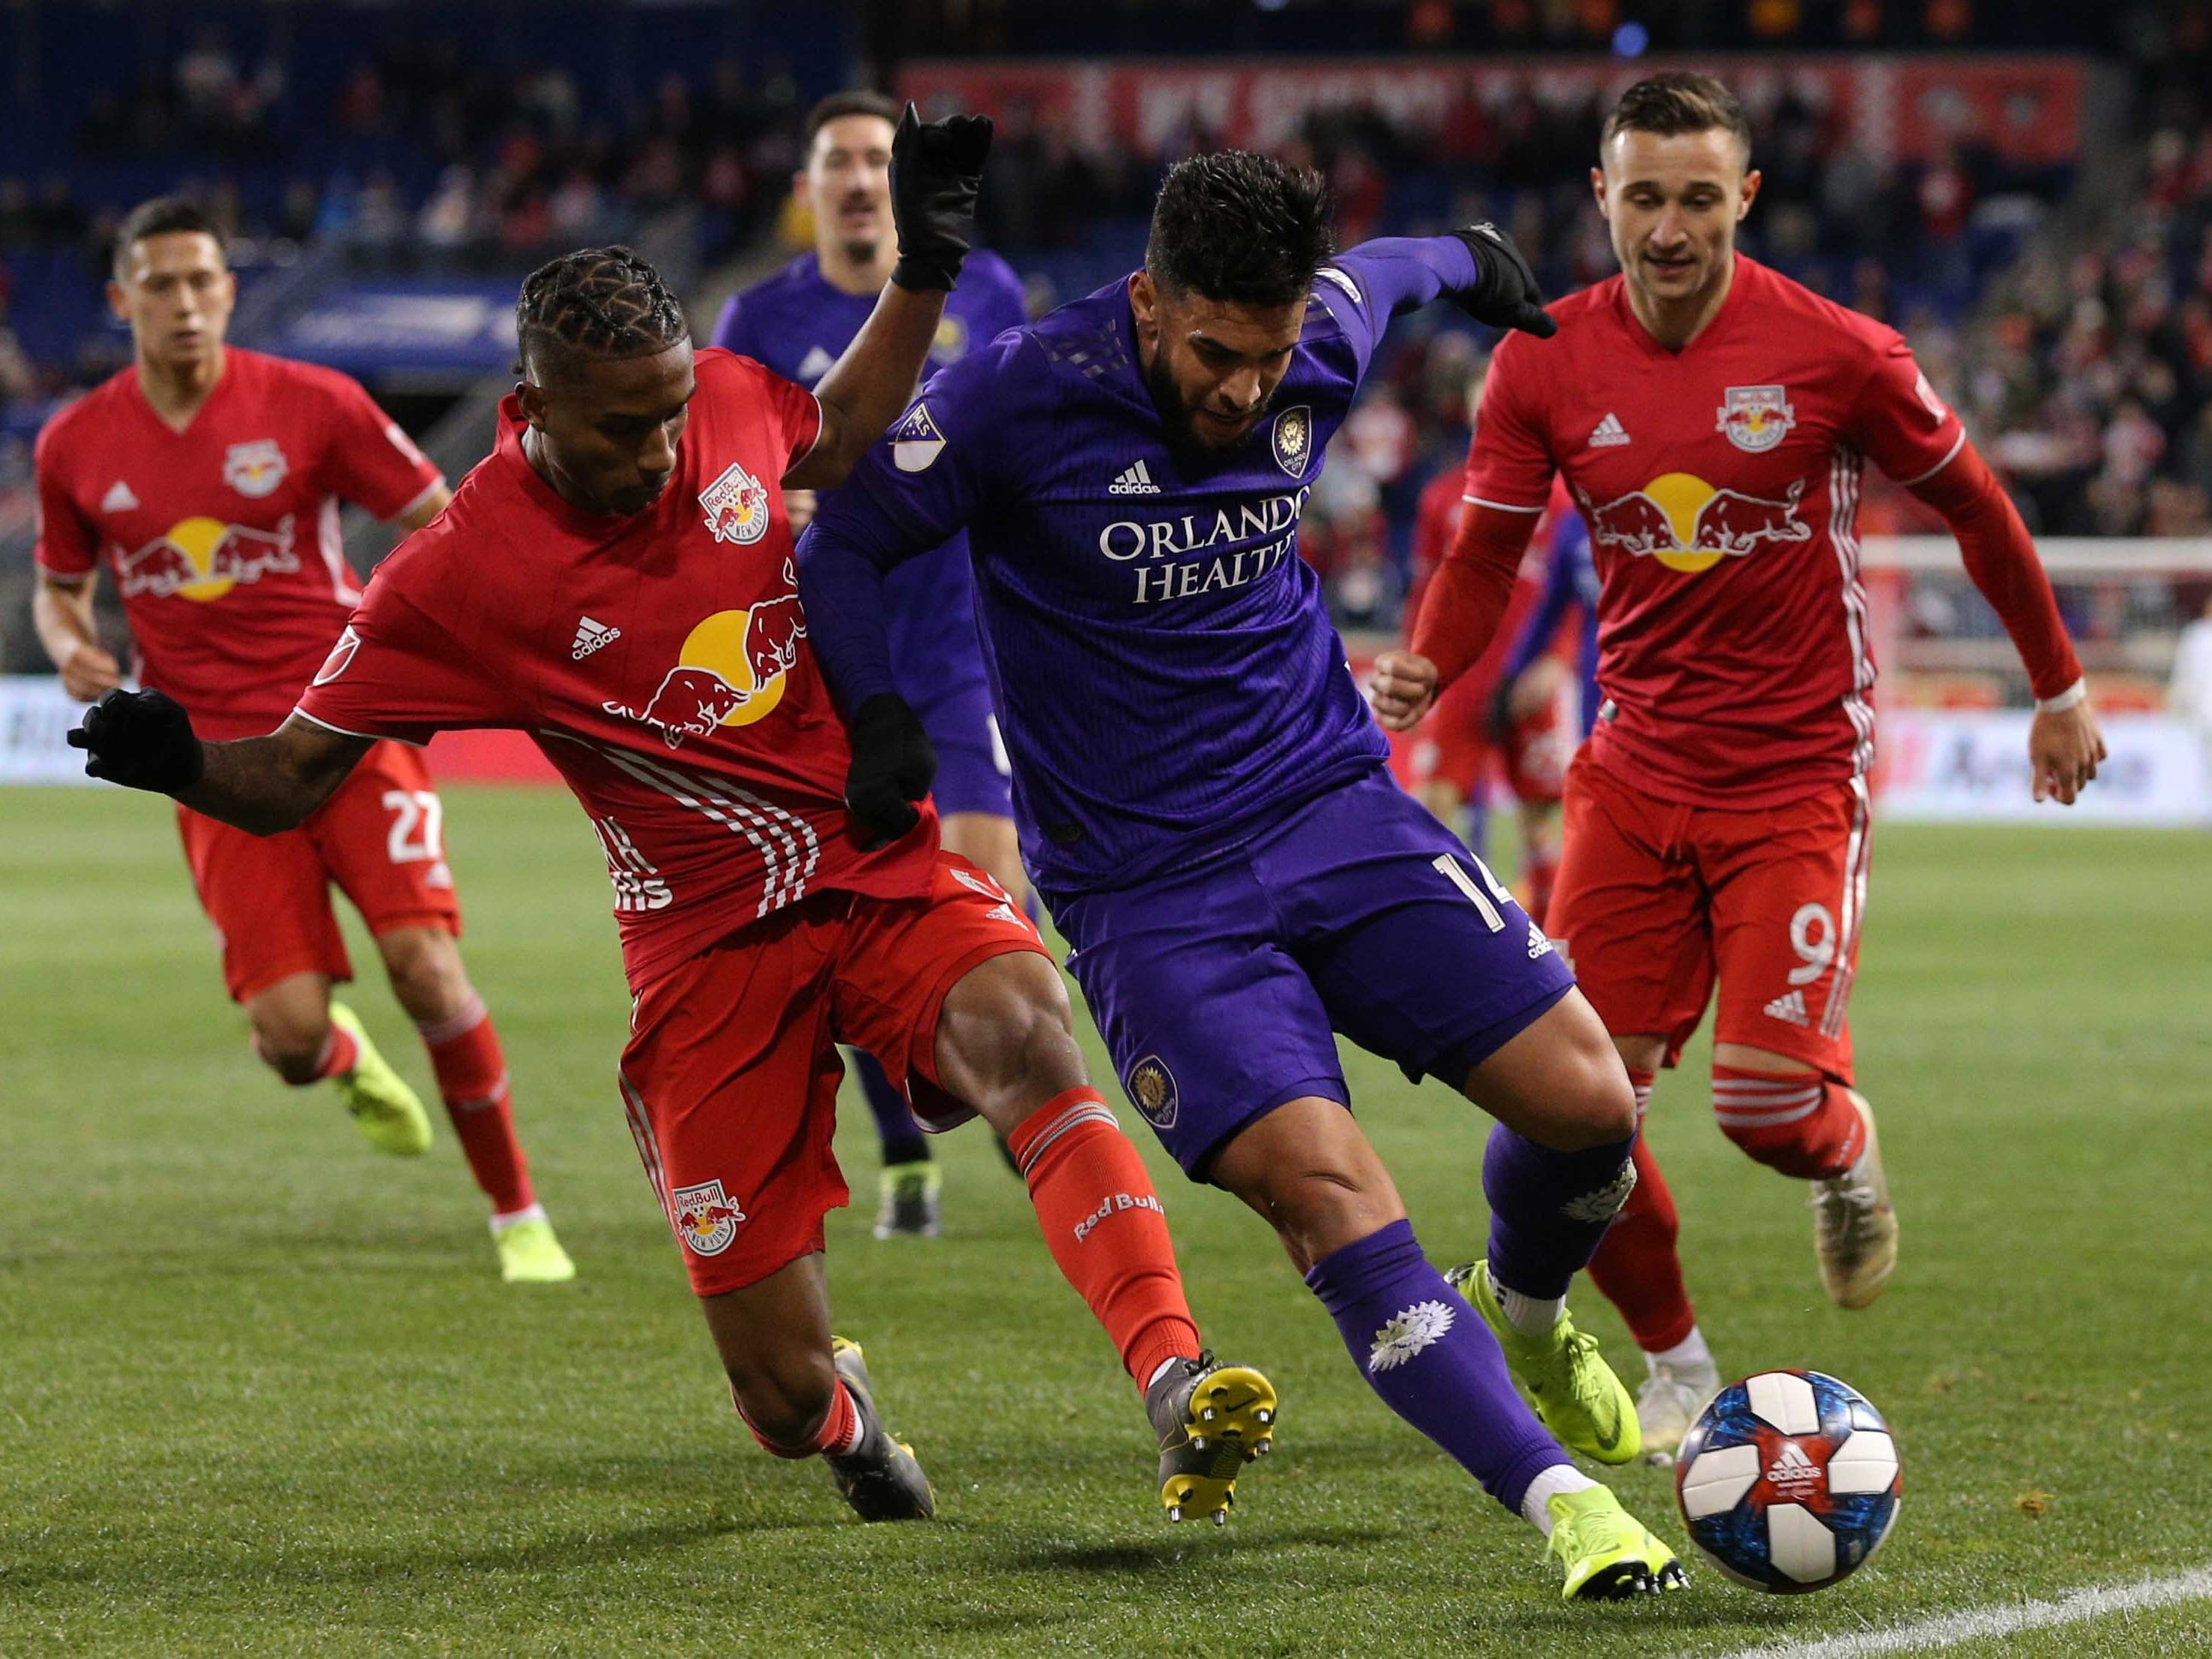 March 23: Orlando City SC forward Dom Dwyer plays the ball against New York Red Bulls defender Kyle Duncan and forward Andreas Ivan (9) during the second half at Red Bull Arena. Orlando won the game, 1-0.